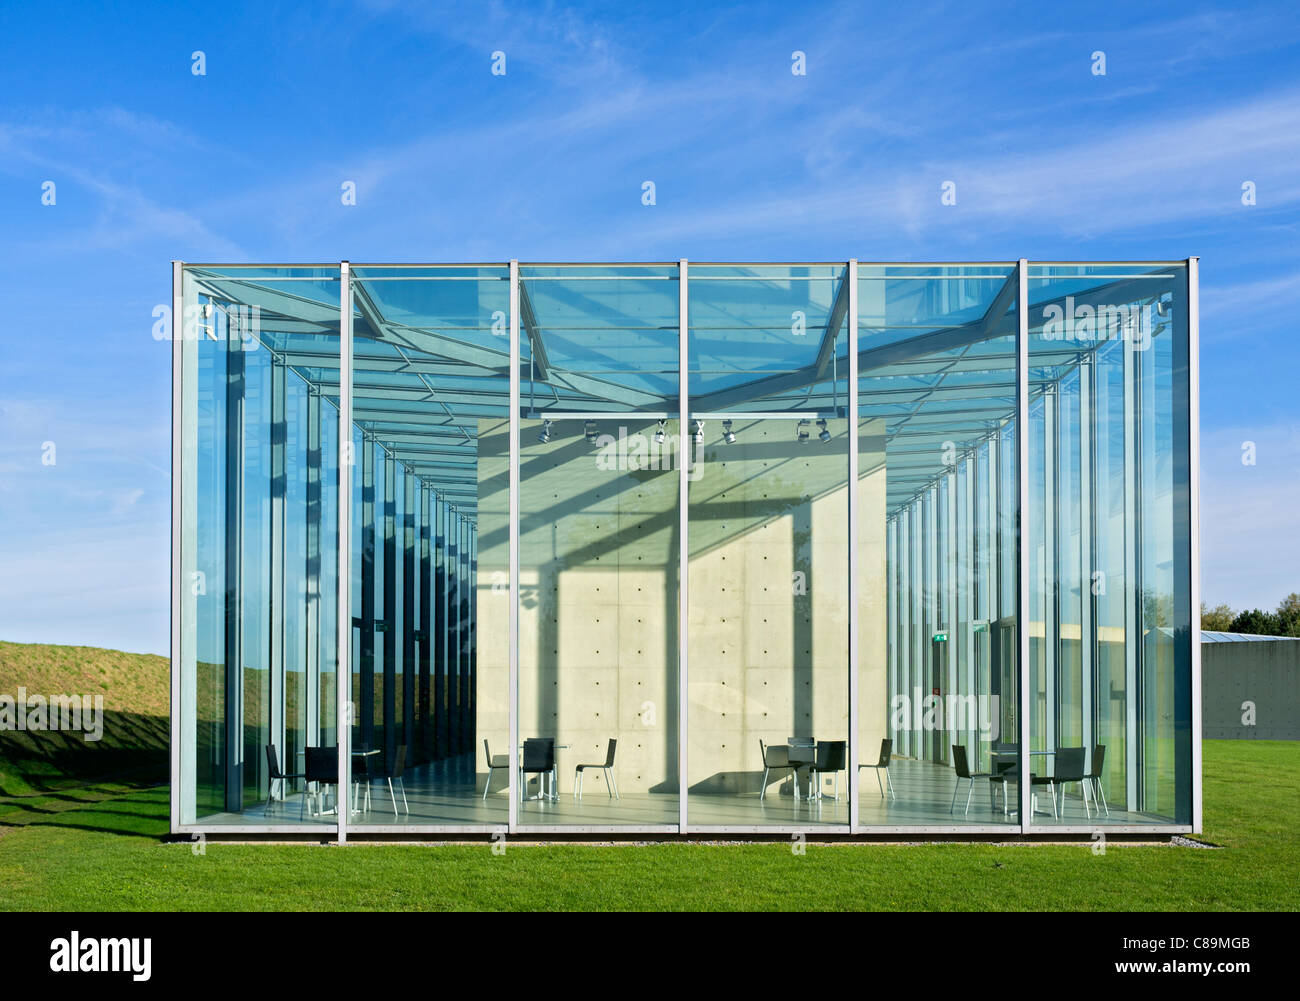 Langen Foundation art museum designed by Tadao Ando at Hombroich in Neuss in Germany - Stock Image